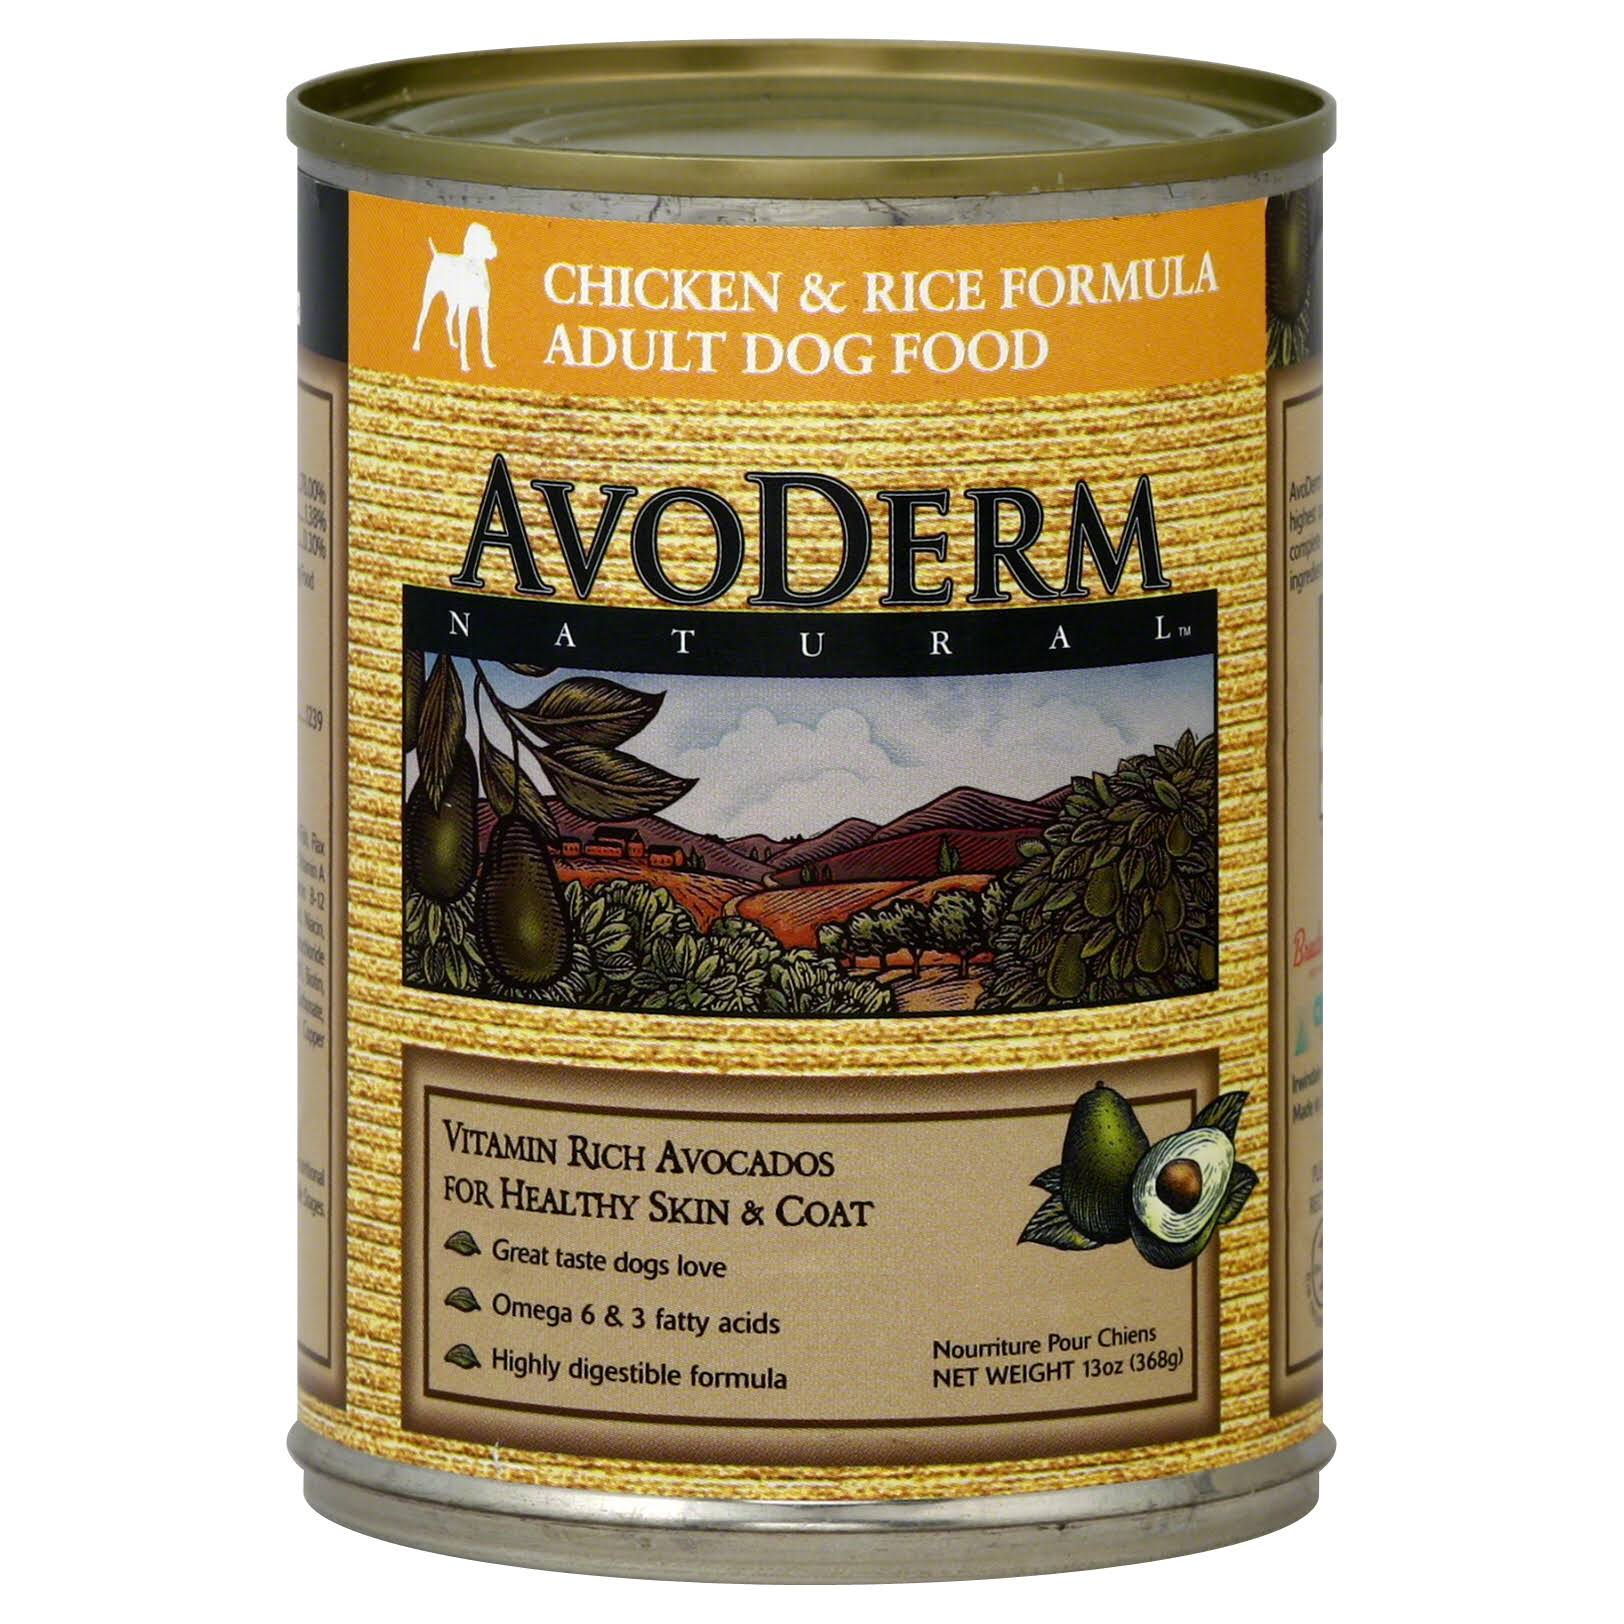 AvoDerm Natural Canned Dog Food - Chicken Meal & Rice Formula, 13oz